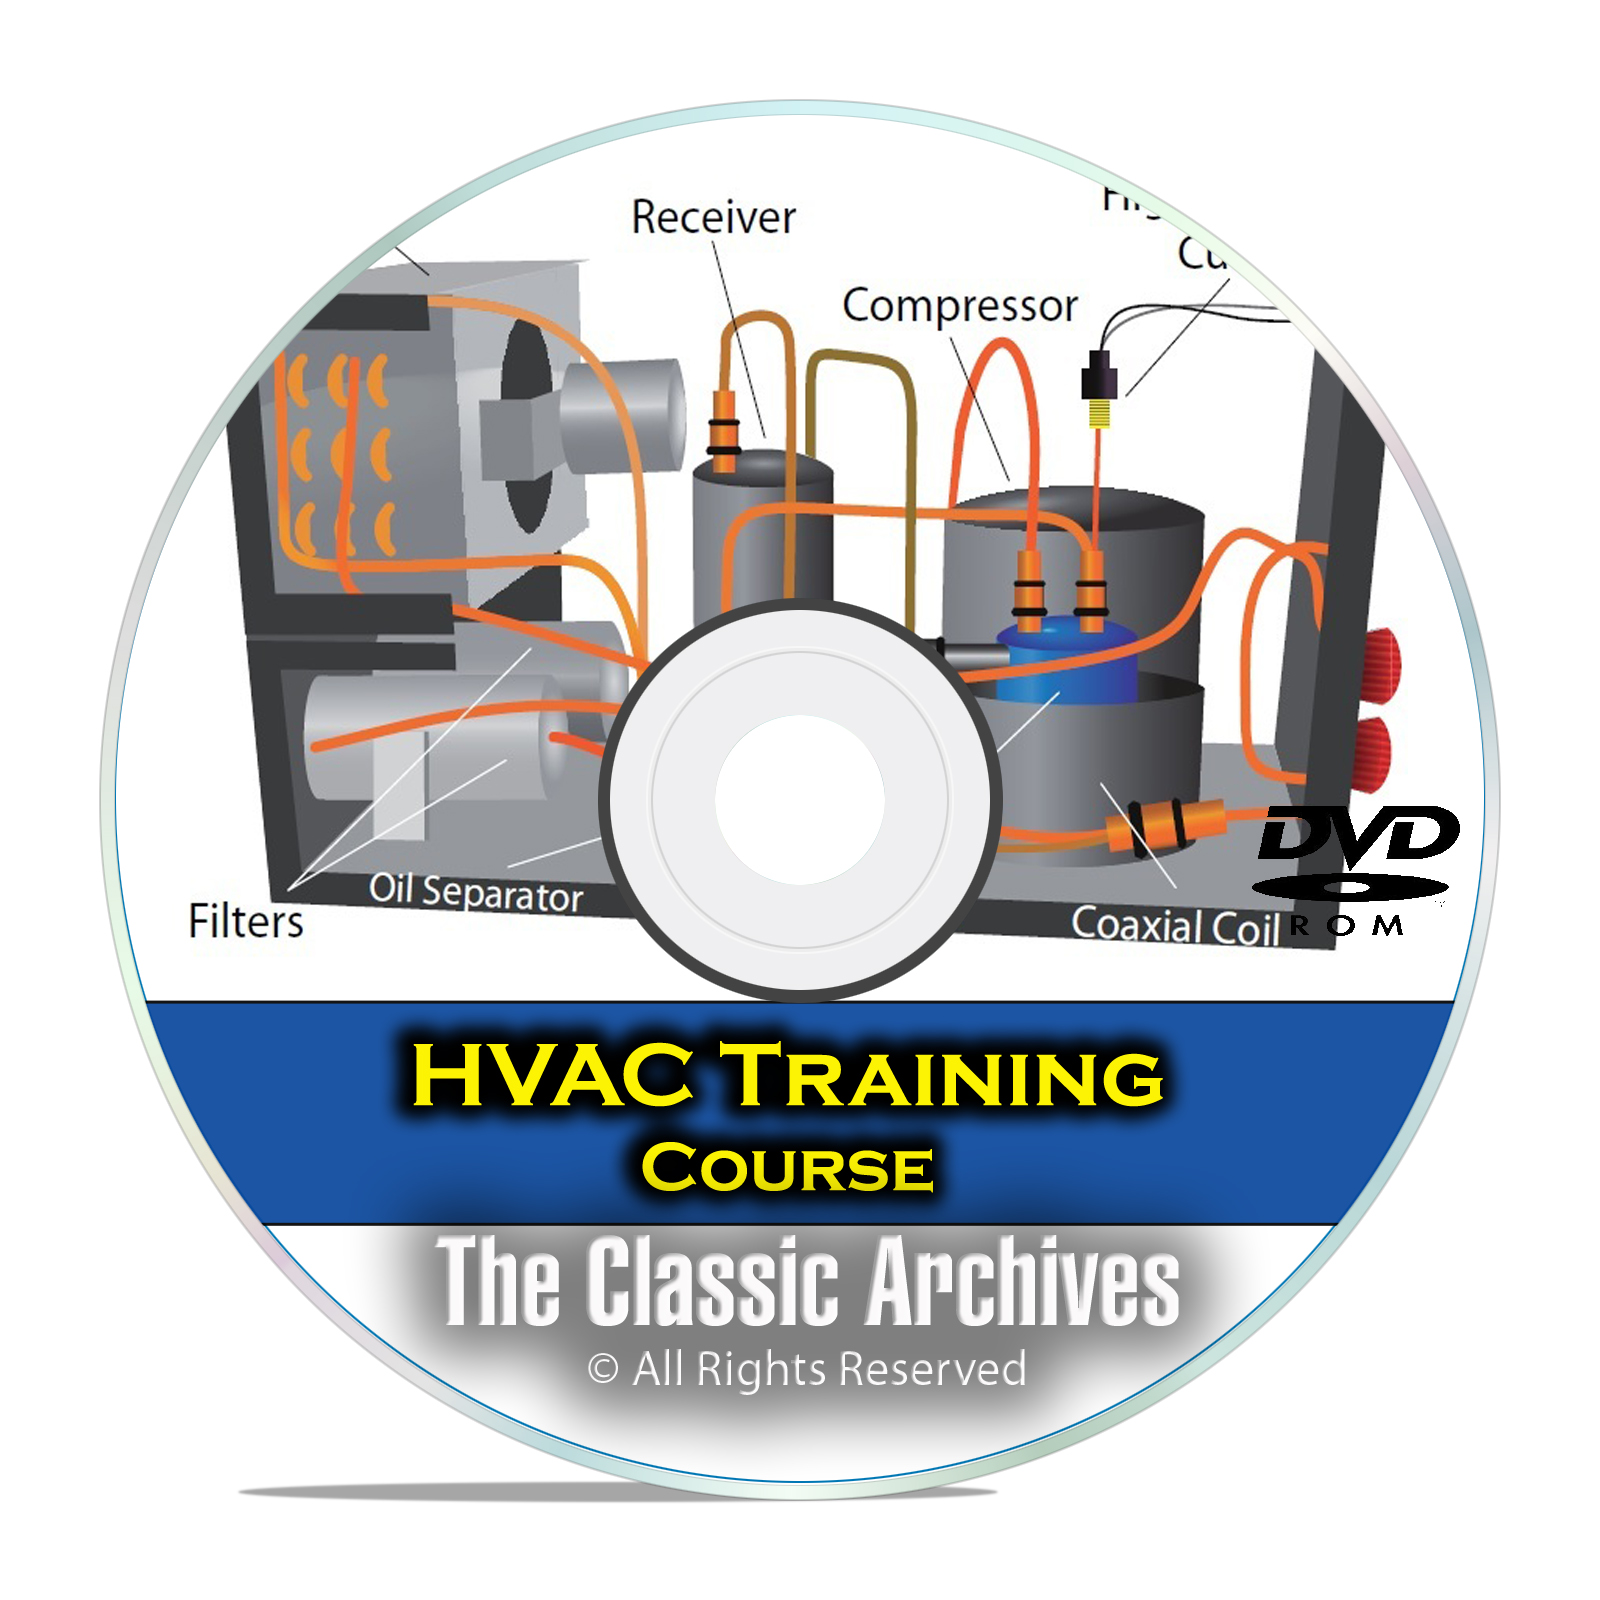 HVAC Journeyman Training Course, Heating Air Conditioning Technician DVD